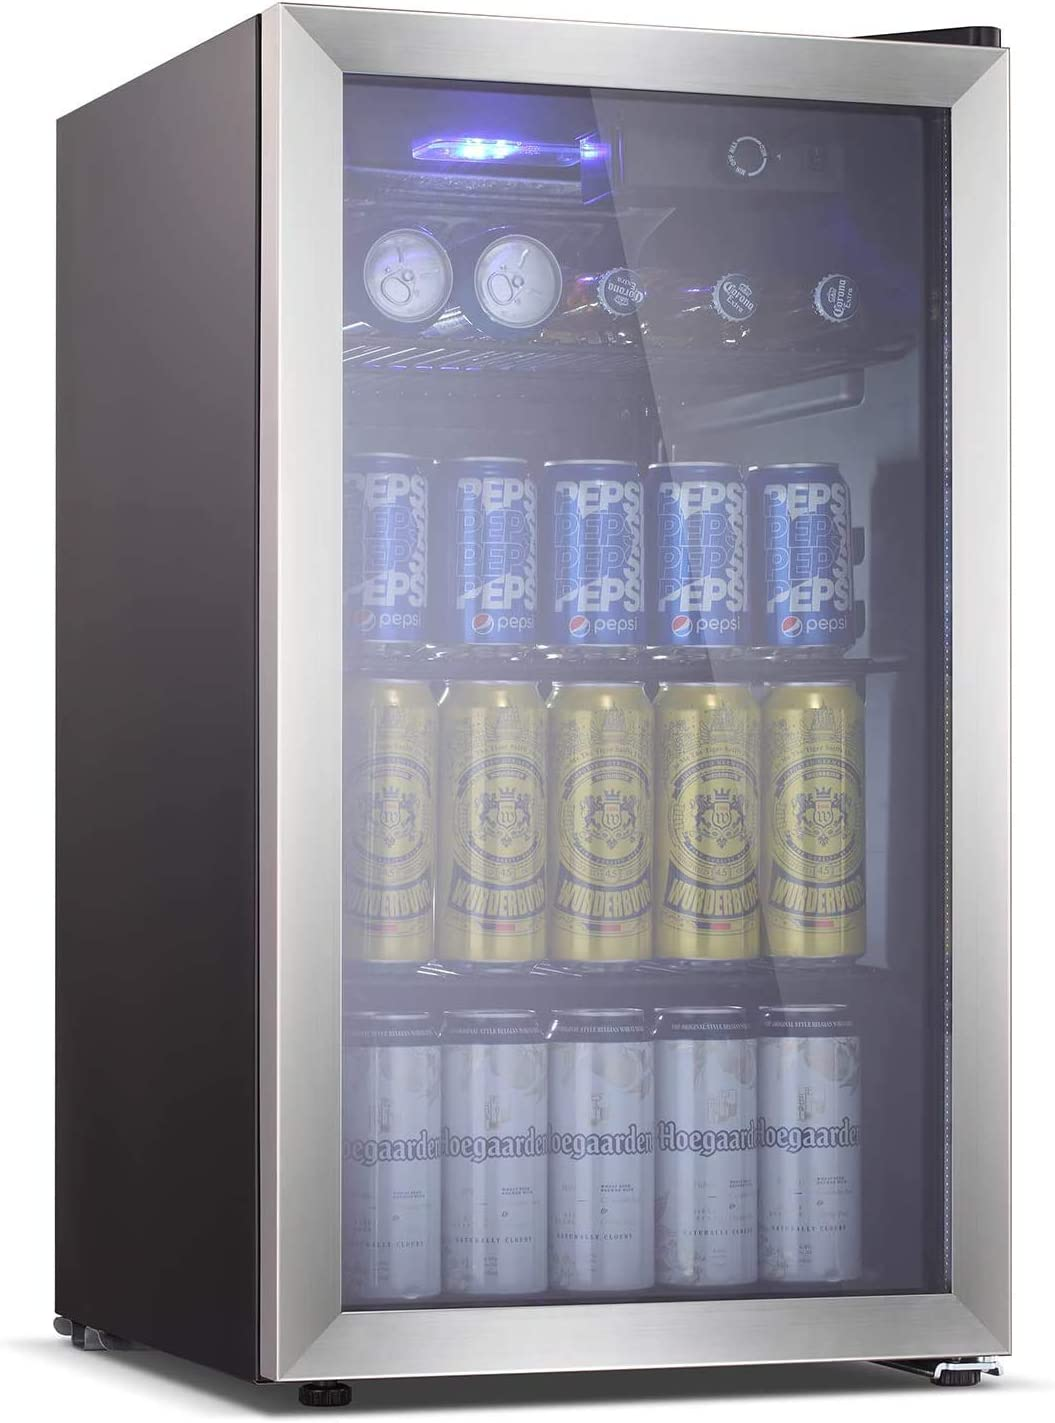 Antarctic Star Beverage Refrigerator -145 Can Mini Fridge for Soda Beer or wine,Small Drink Dispenser, For Office or Bar with Adjustable Removable Shelves,3.2 Cu. Ft. (silver)